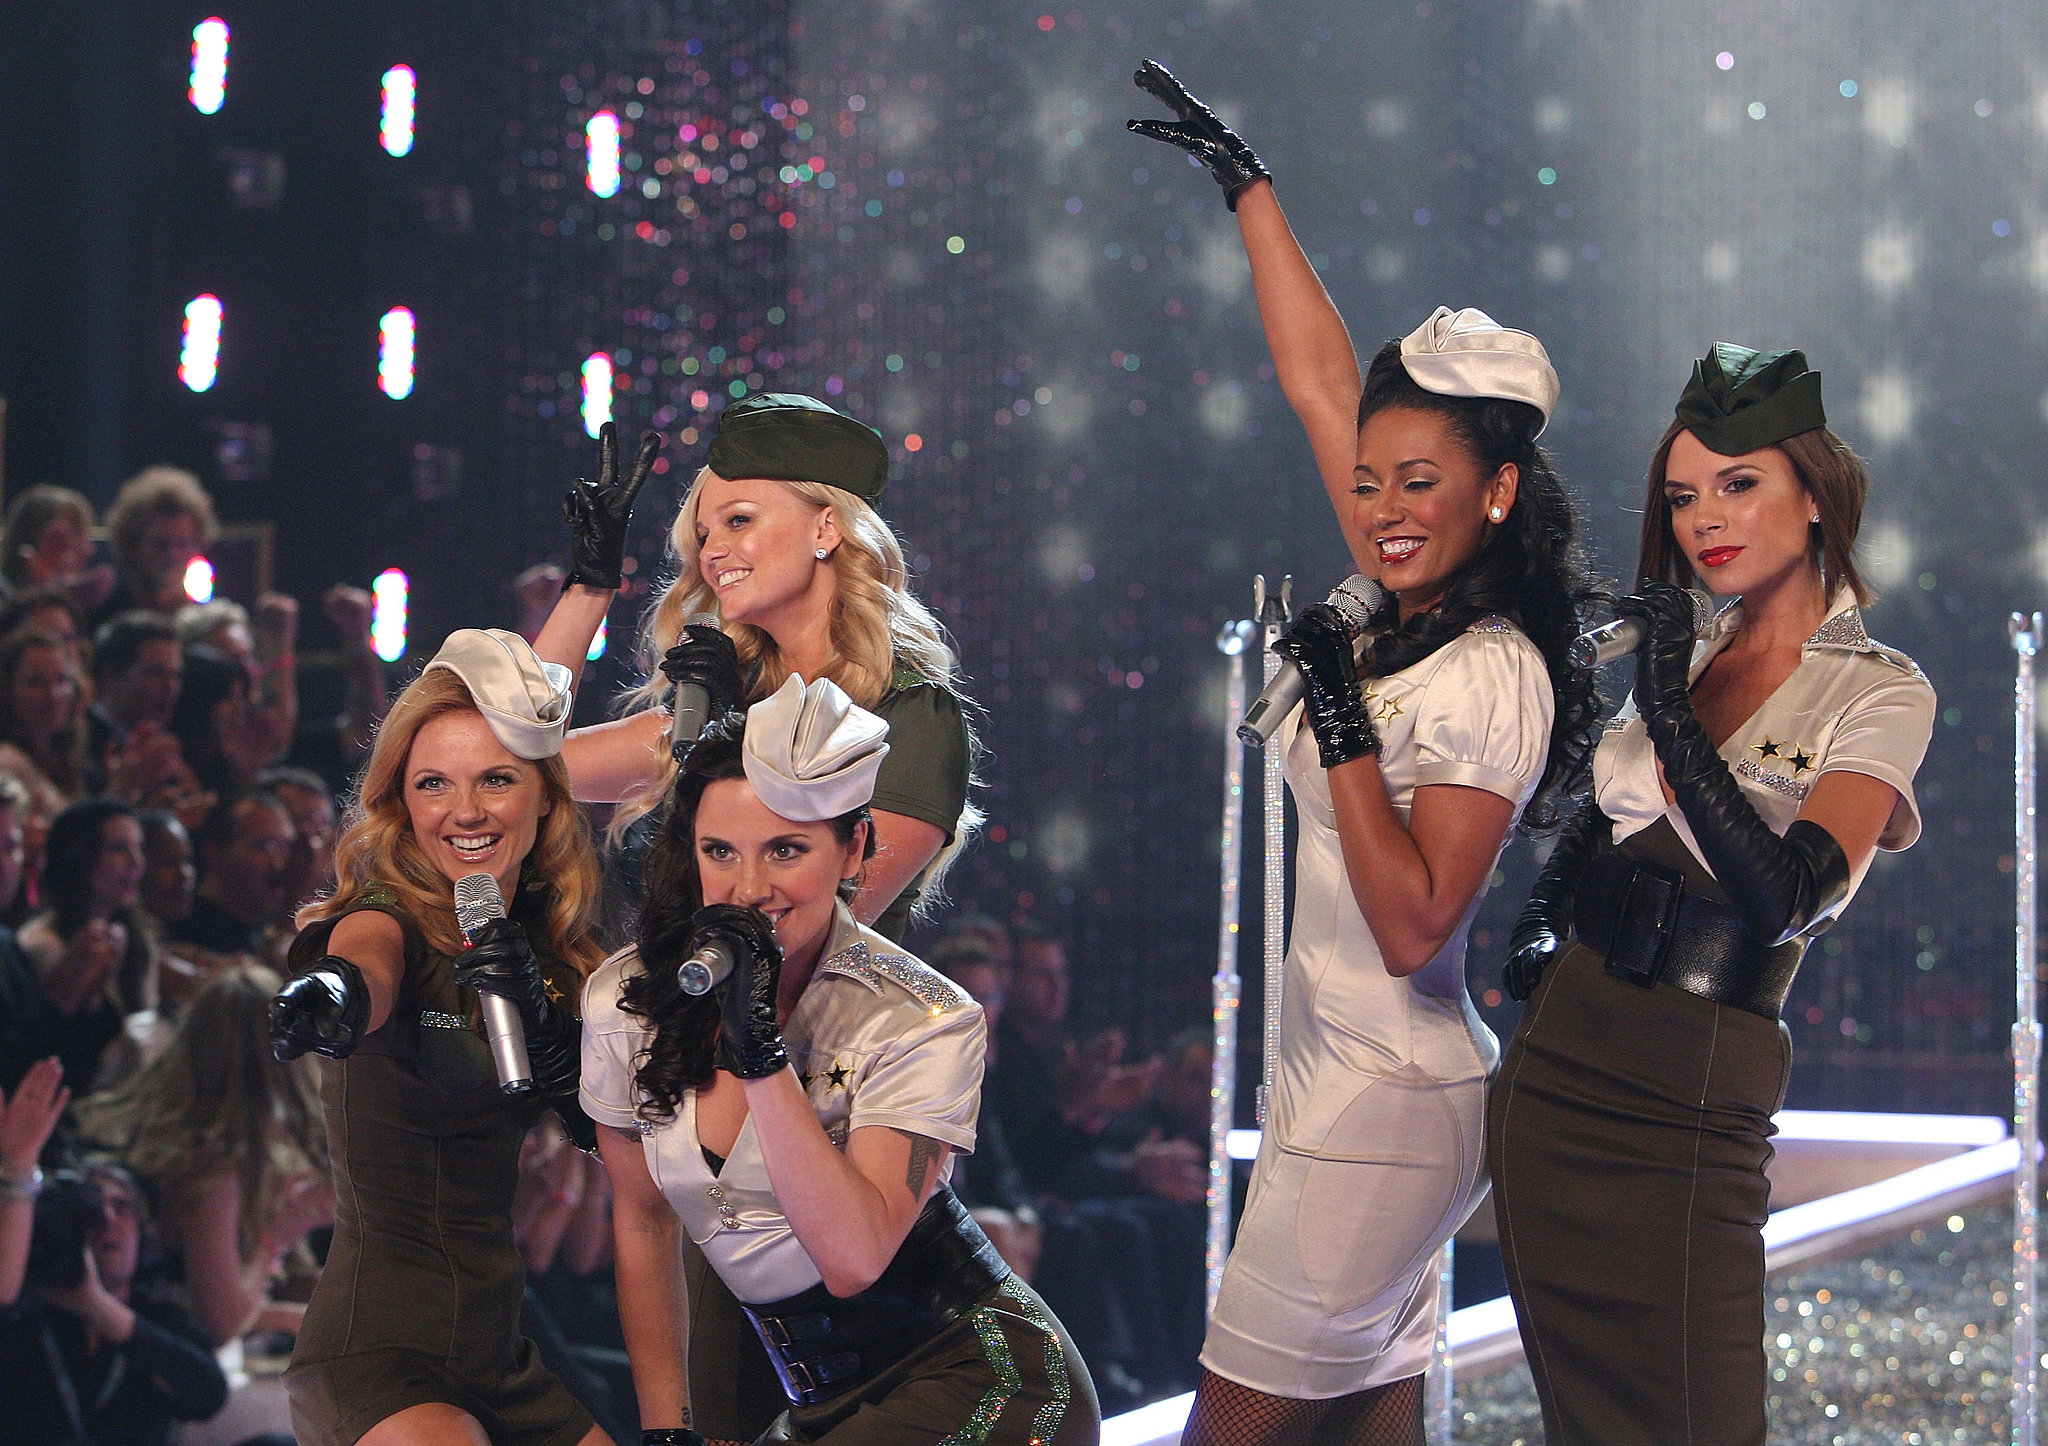 The Spice Girls performing in 2007.